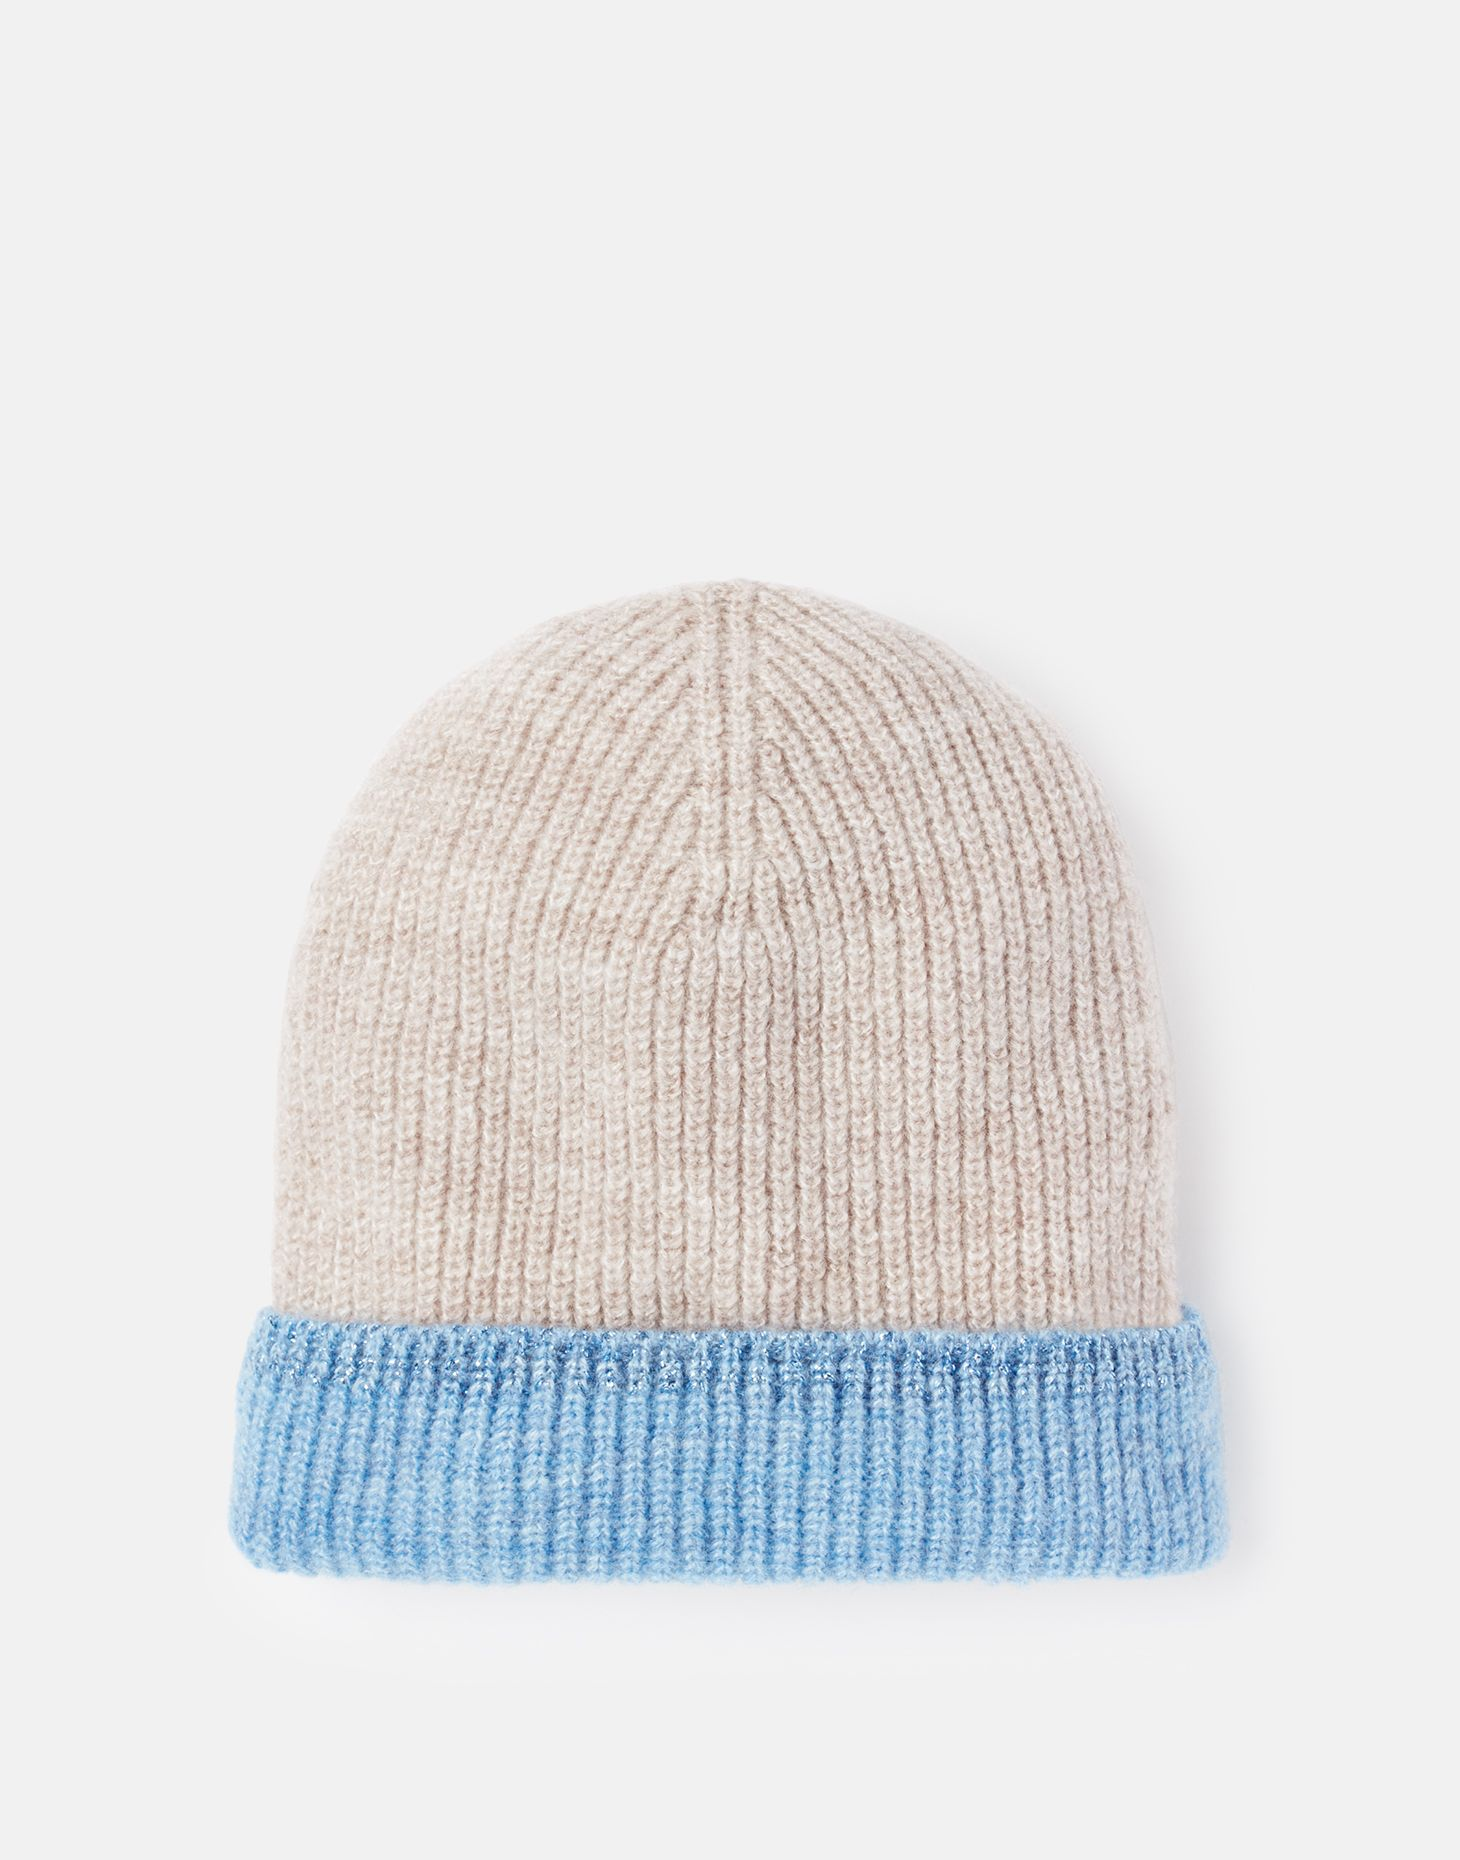 One Size Blue Joules Womens Harper Hat Beanie